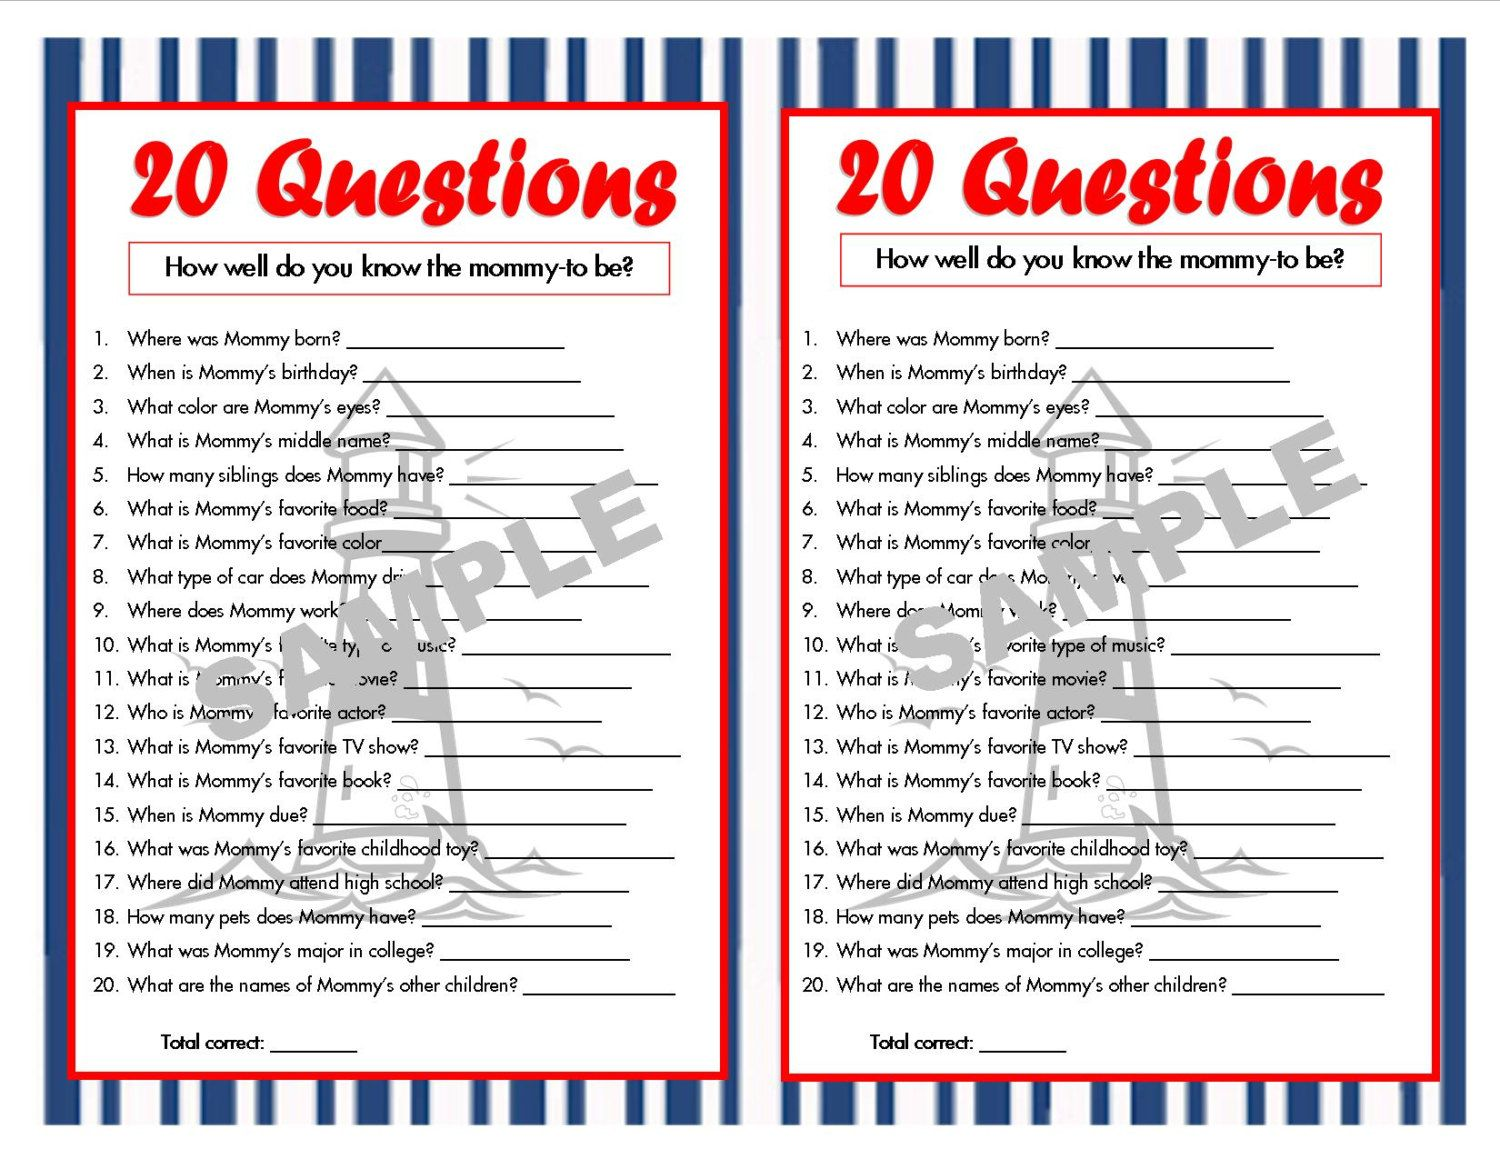 20 Questions Nautical Printable Party Game, Nautical Baby Shower, Nautical  Theme, Who Knows Mommy Best, How Well Do You Know Mommy